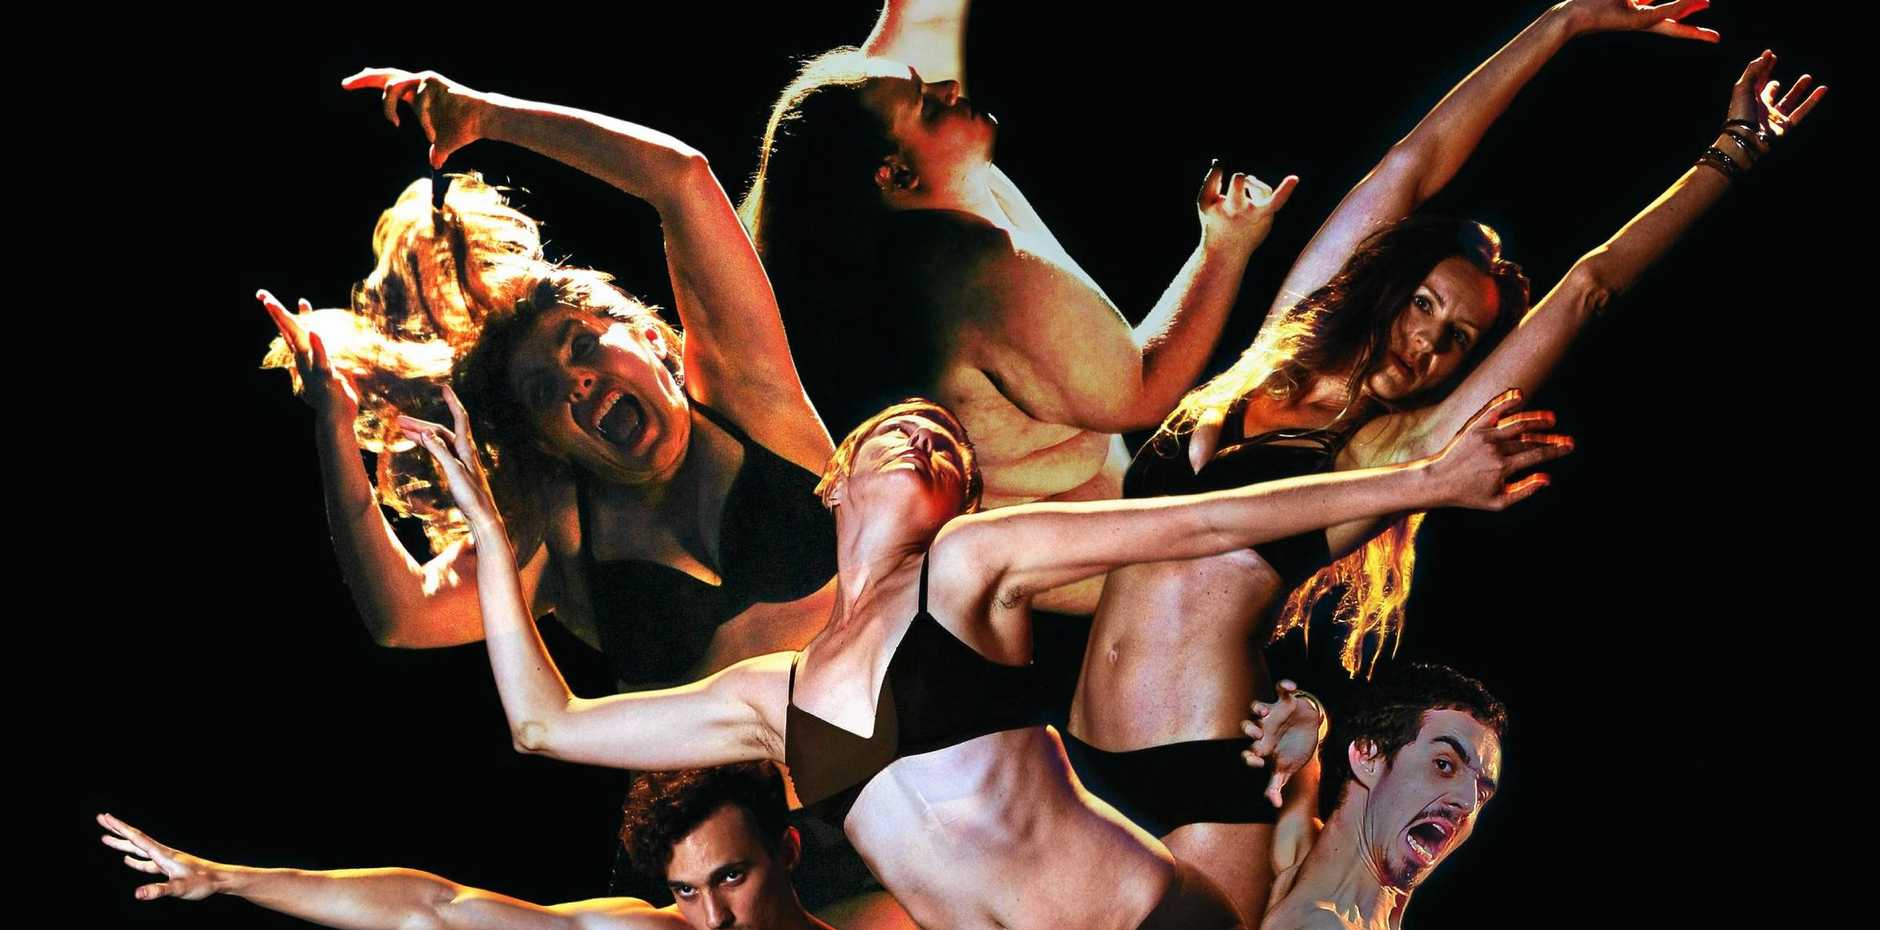 USC Performing Arts Masters students will appear in the cutting edge performance Dusk 'til Dawn.